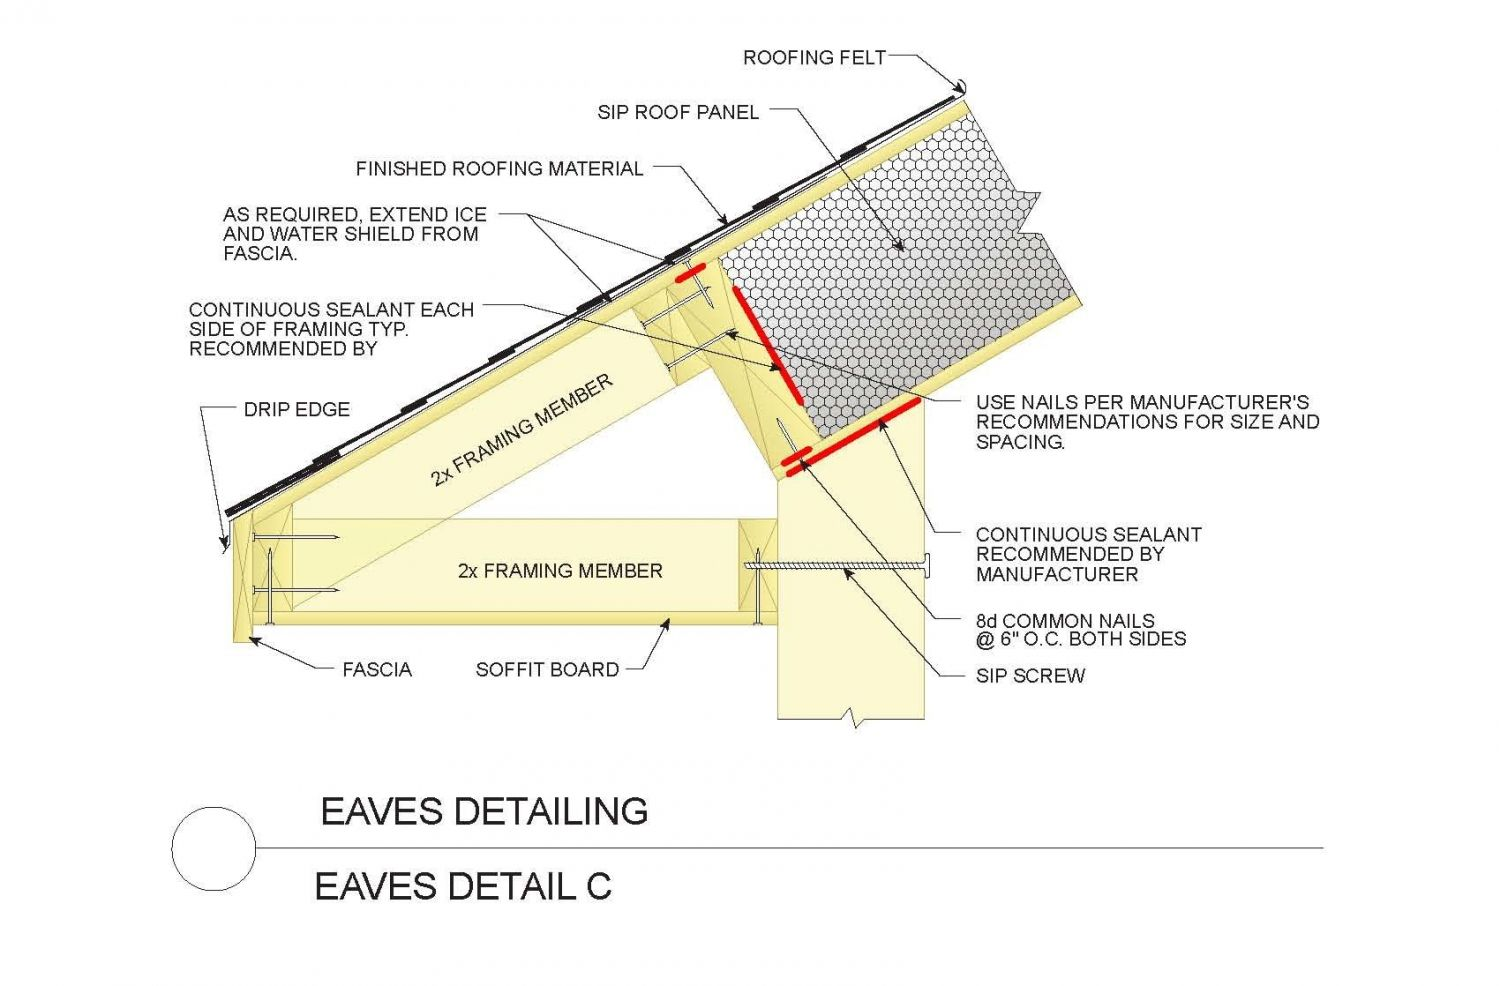 SIP eave using 2x4s rather than using the SIP roof panel as an overhang,  can be a more efficient use of materials